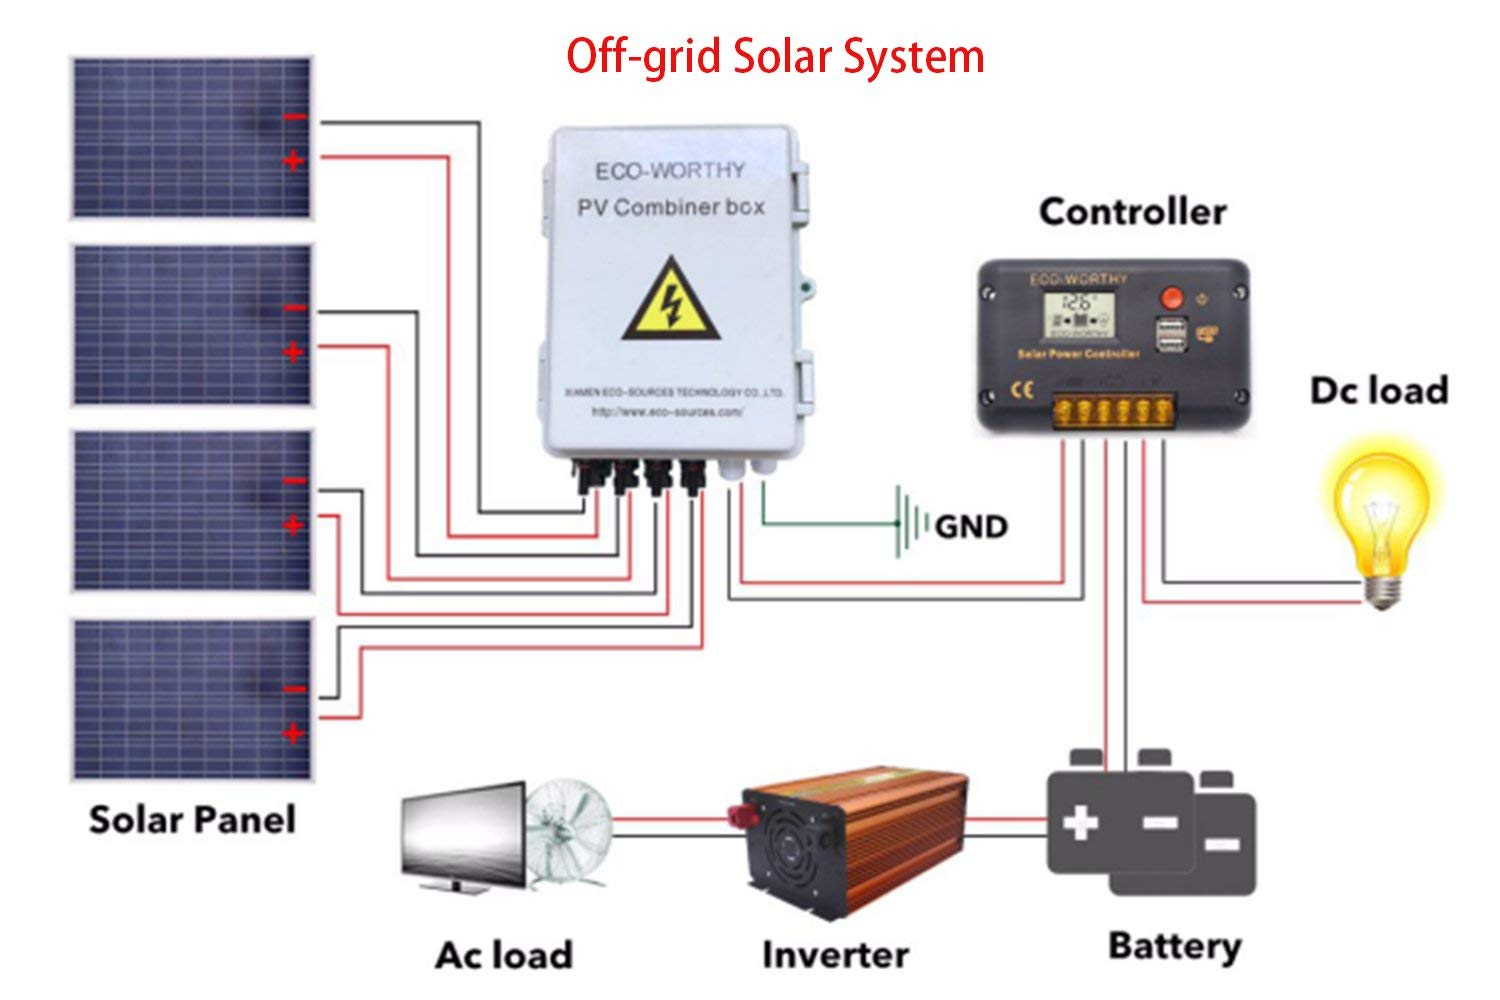 amazon com : eco-worthy 4 string pv combiner joint box 10a circuit breakers  for on/off grid solar panel system : garden & outdoor